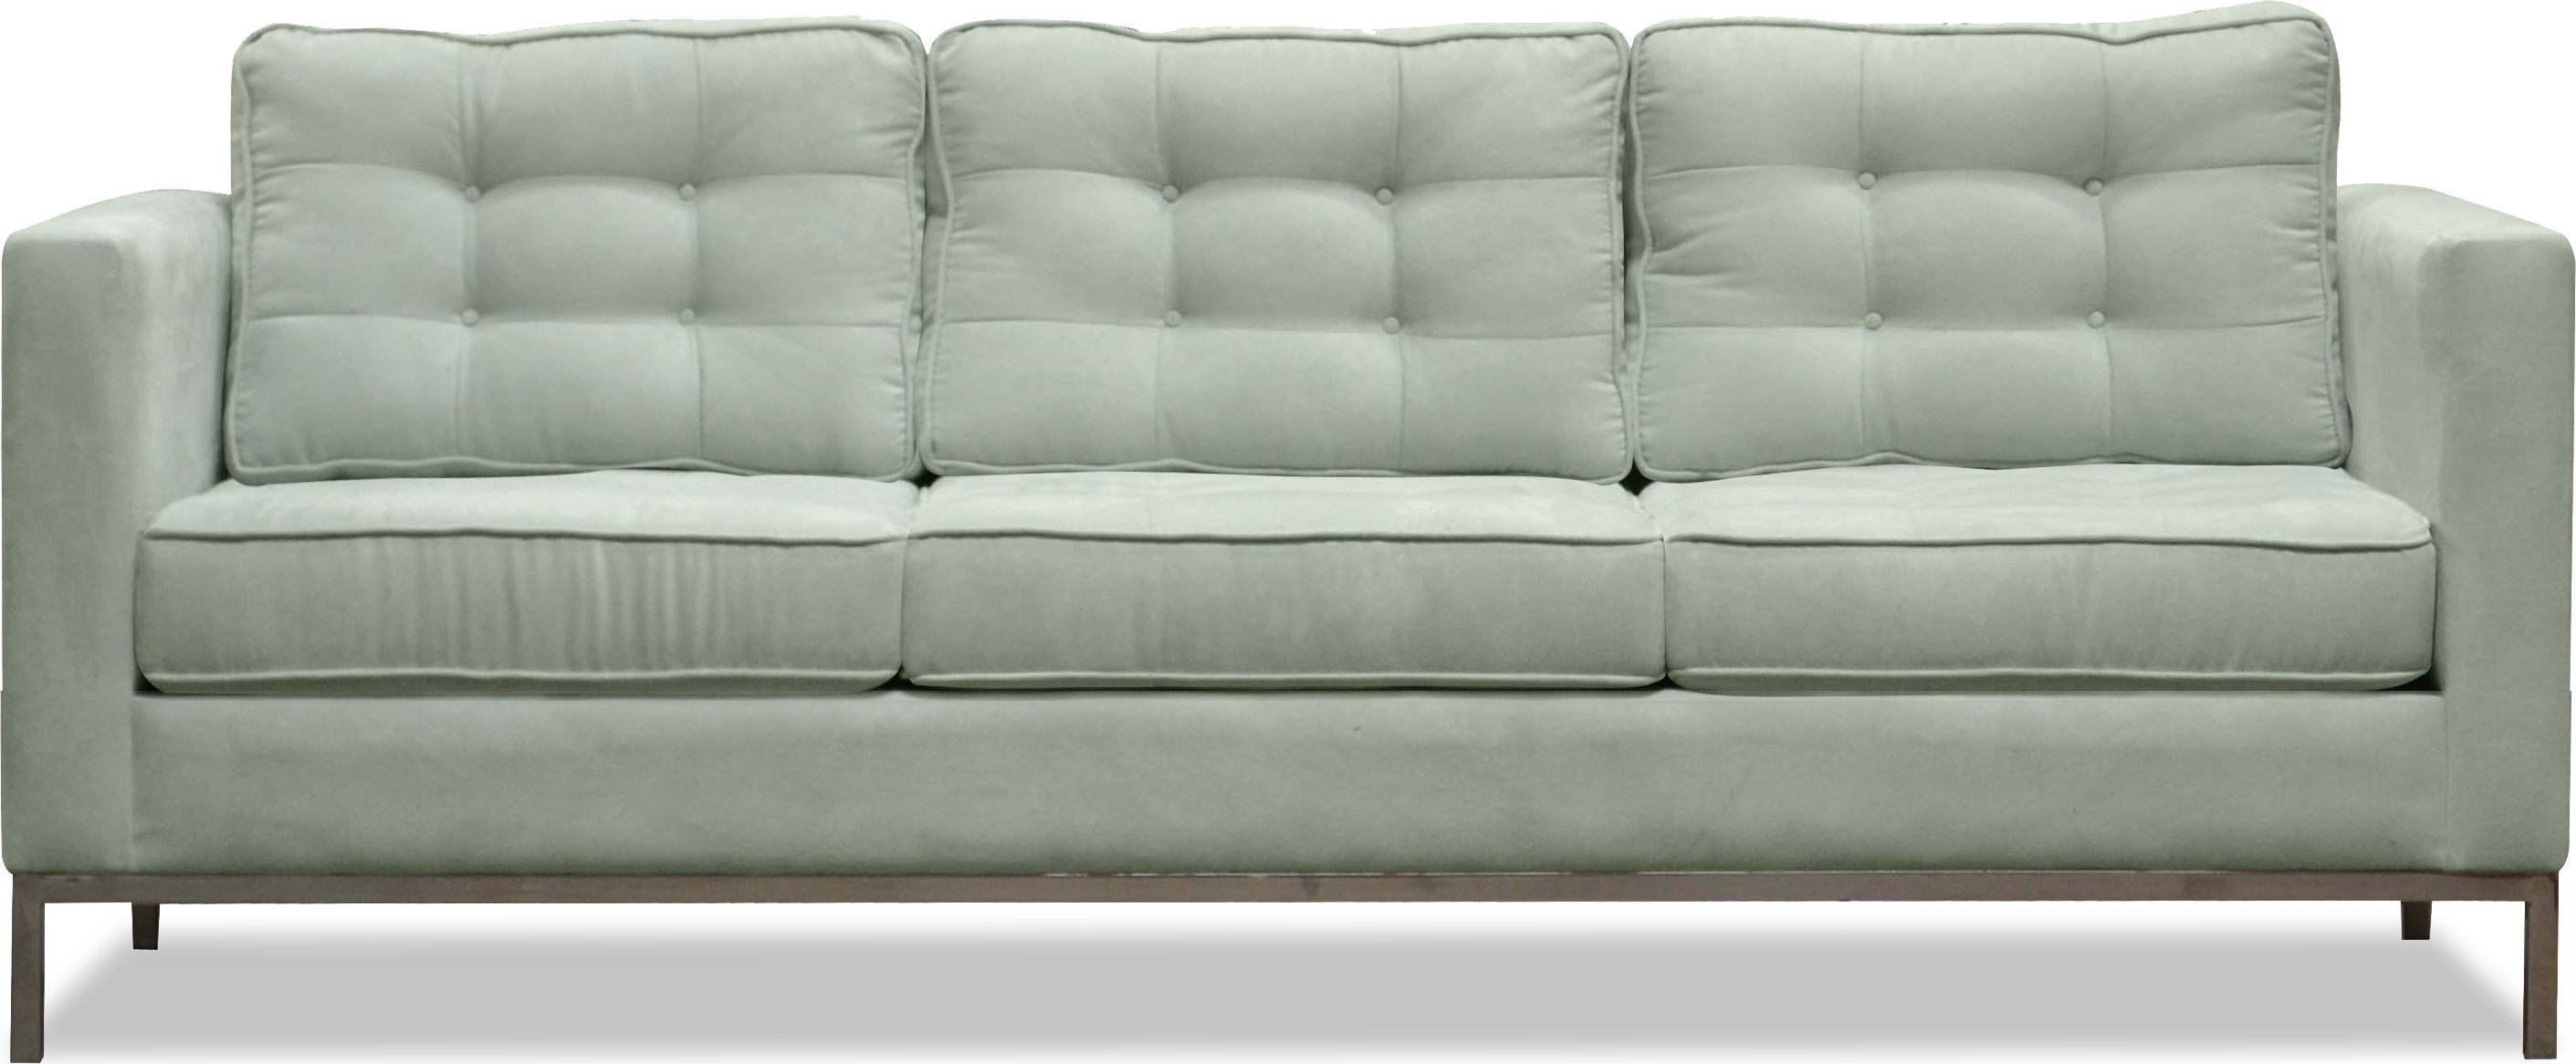 The Sofa Company - Uno Sofas / Couches - Custom Slipcover Sofas ...